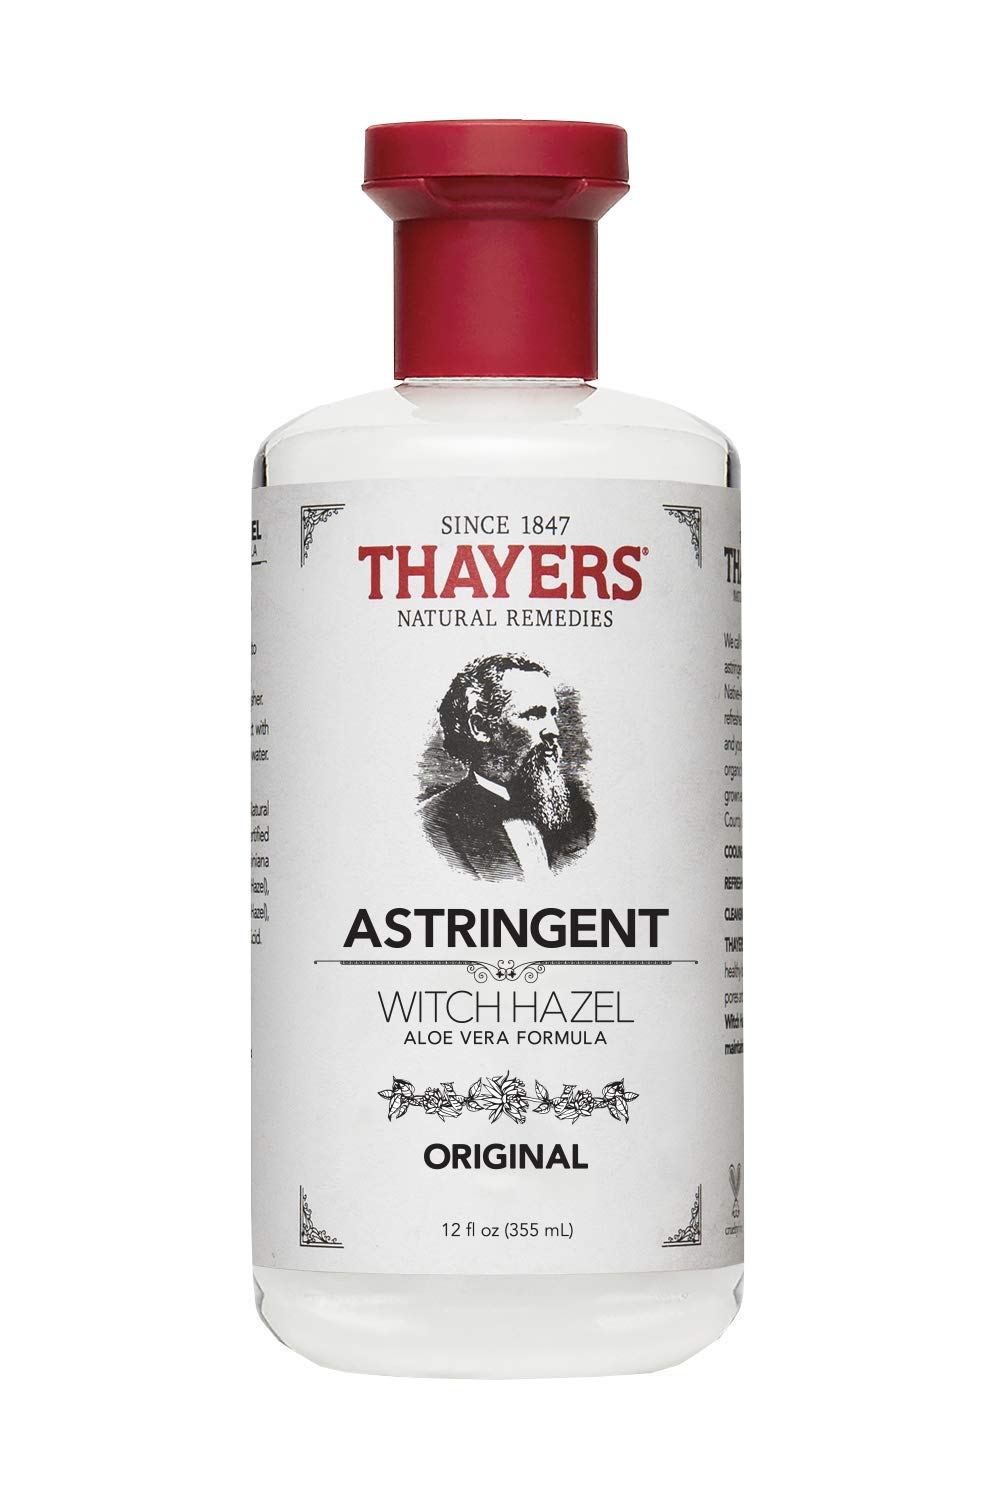 Thayers Witch Hazel with Aloe Vera, Original Astringent, 12 OZ